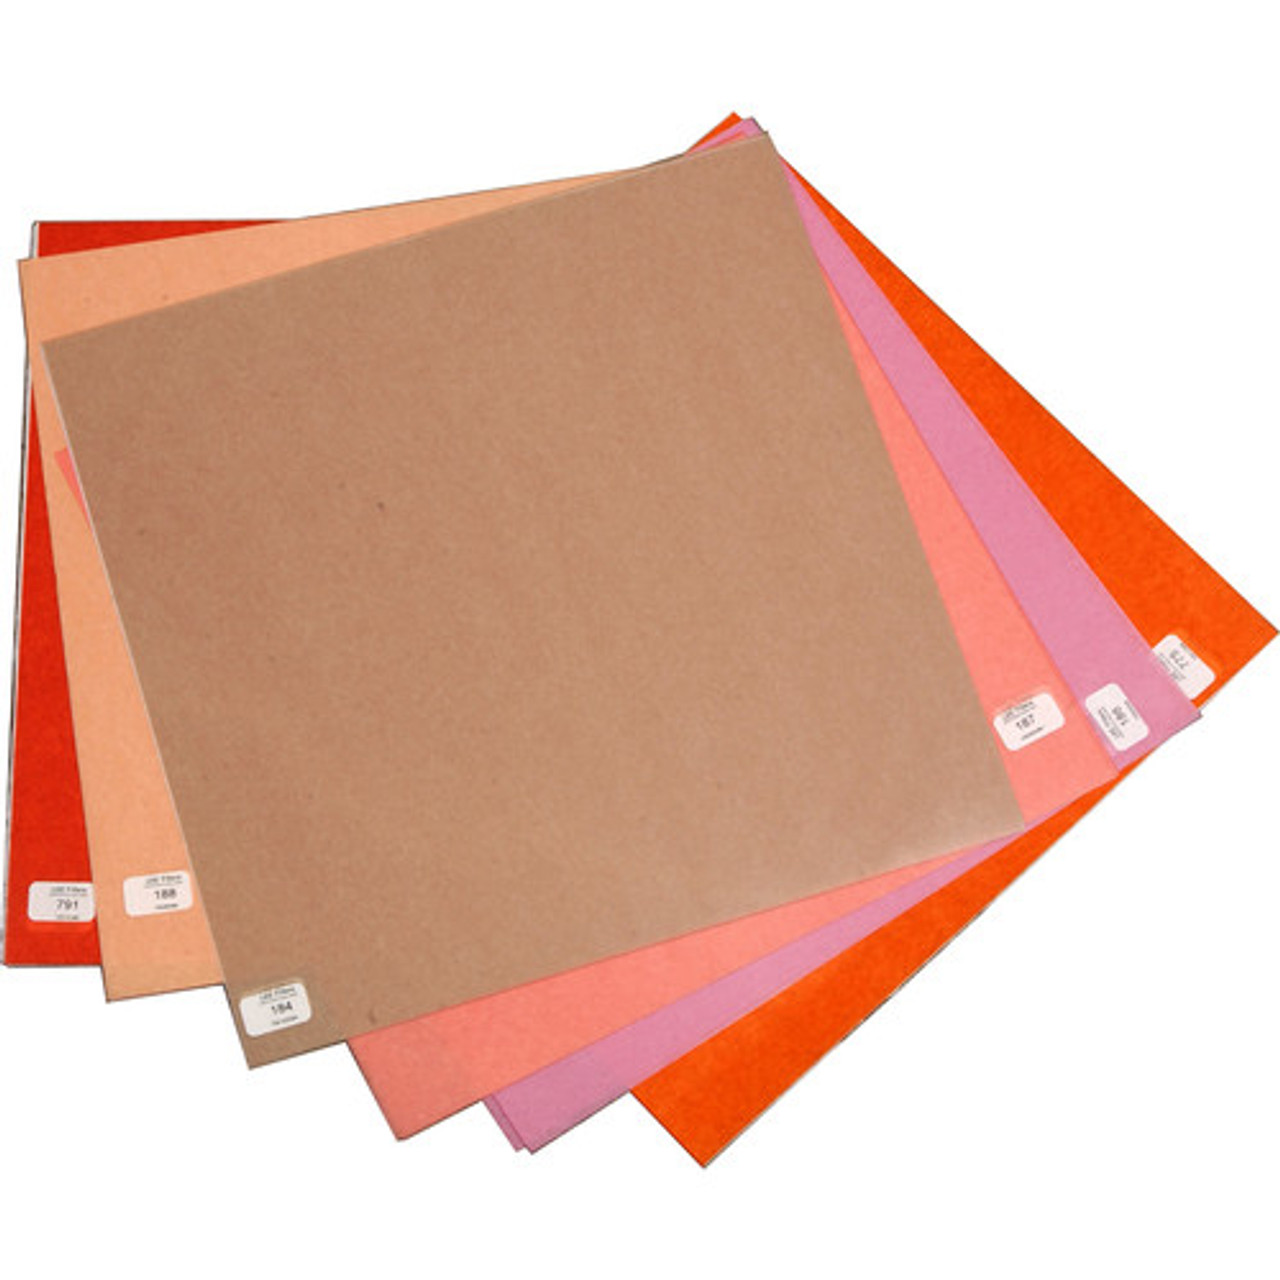 509 - Cosmetic Pack (12 Sheets), Gels